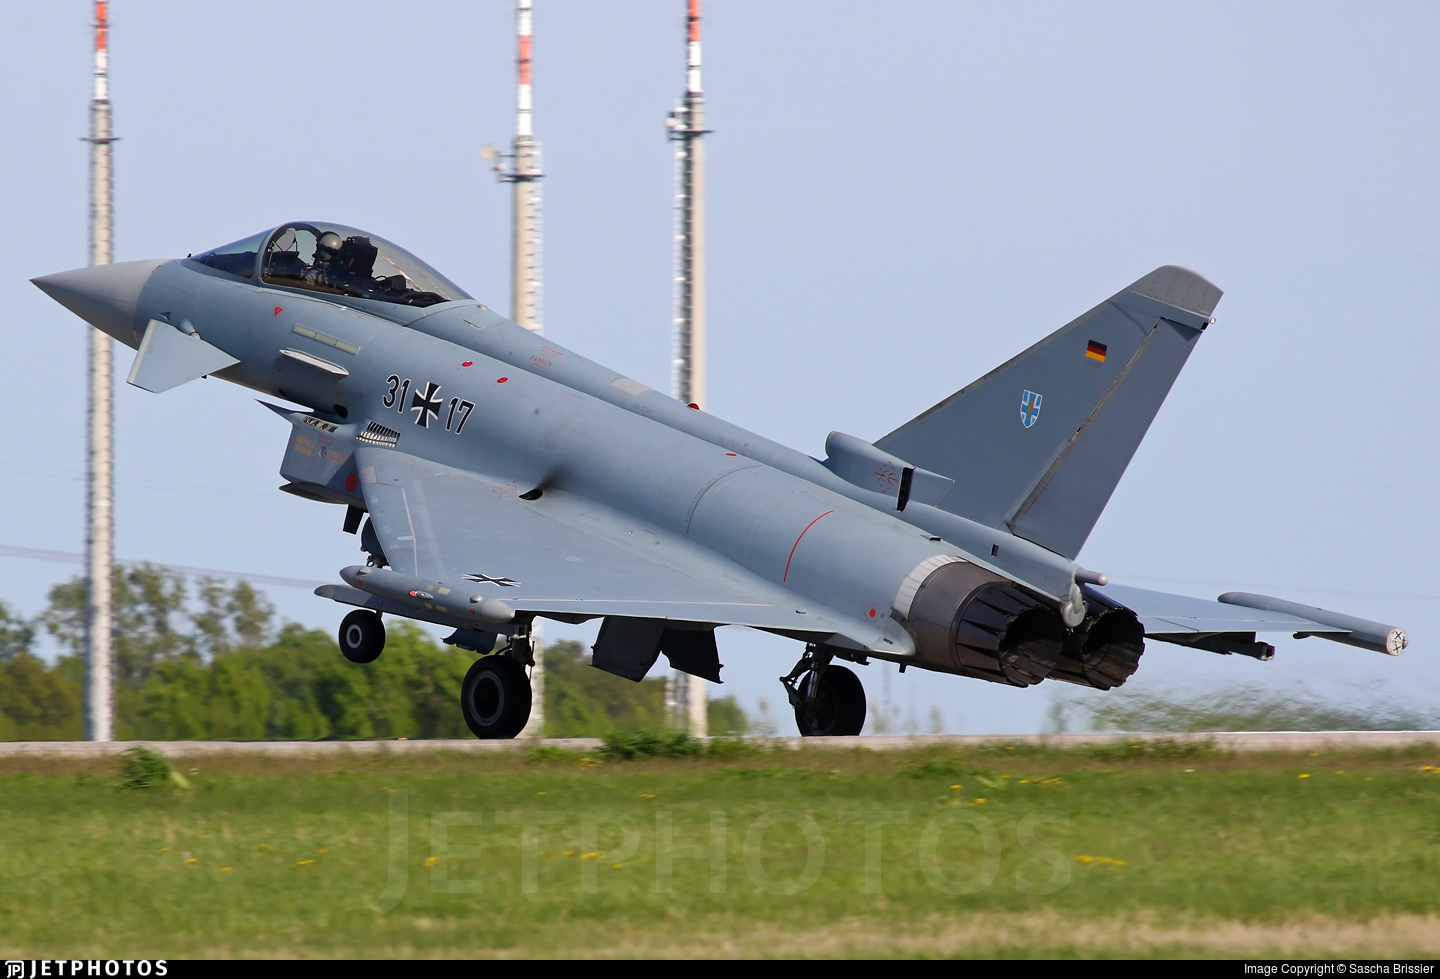 31-17 - Eurofighter Typhoon EF2000 - Germany - Air Force